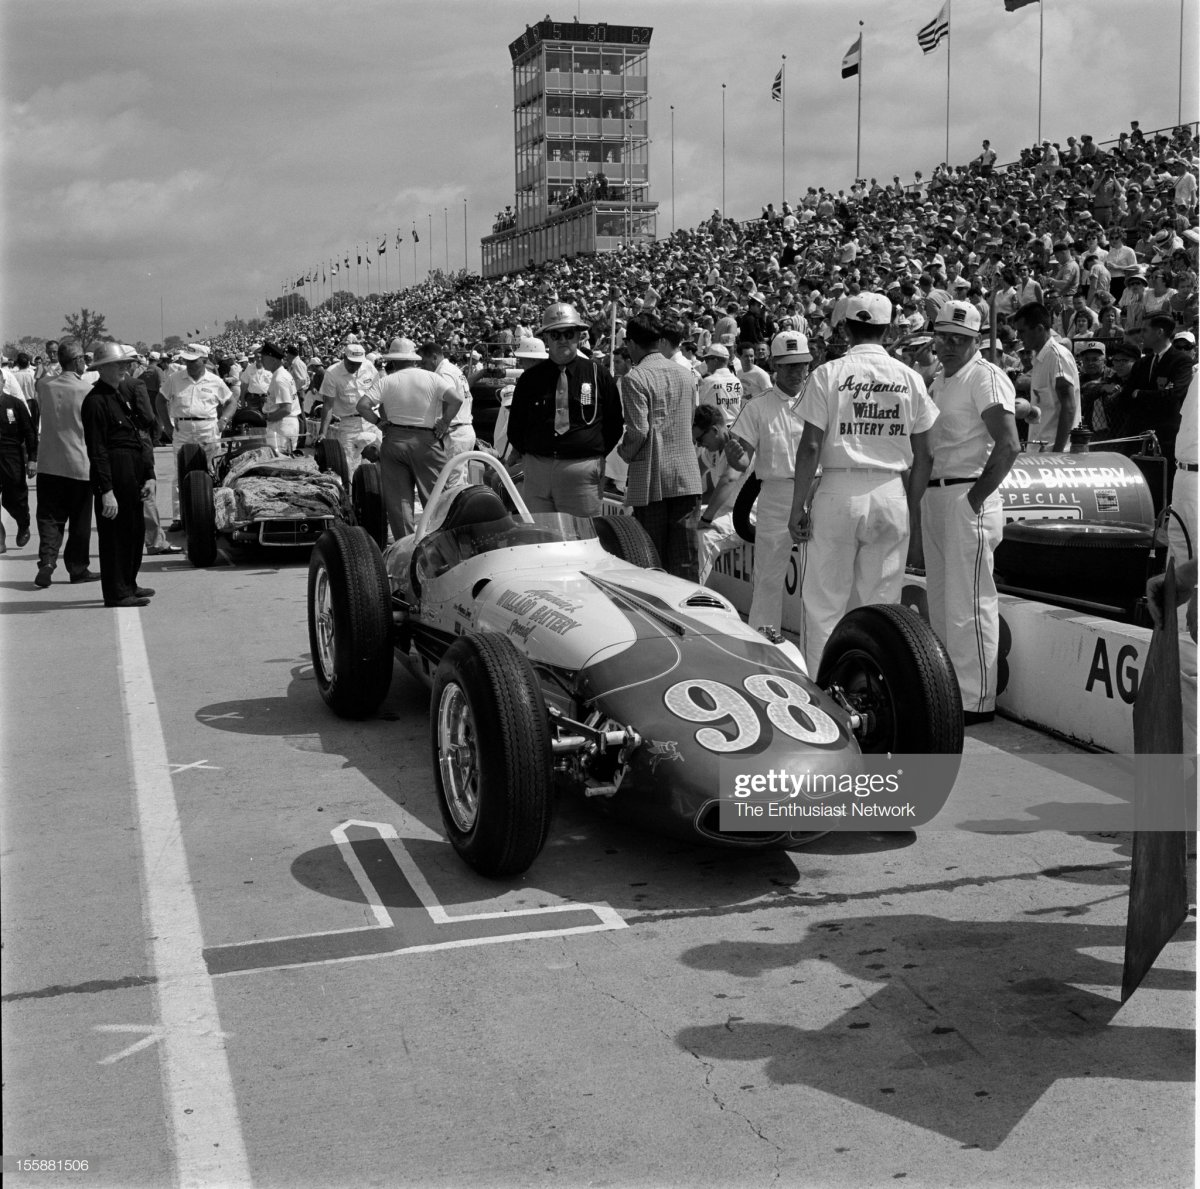 69 1962 Indianapolis 500. Parnelli Jones car sits in the pits..jpg